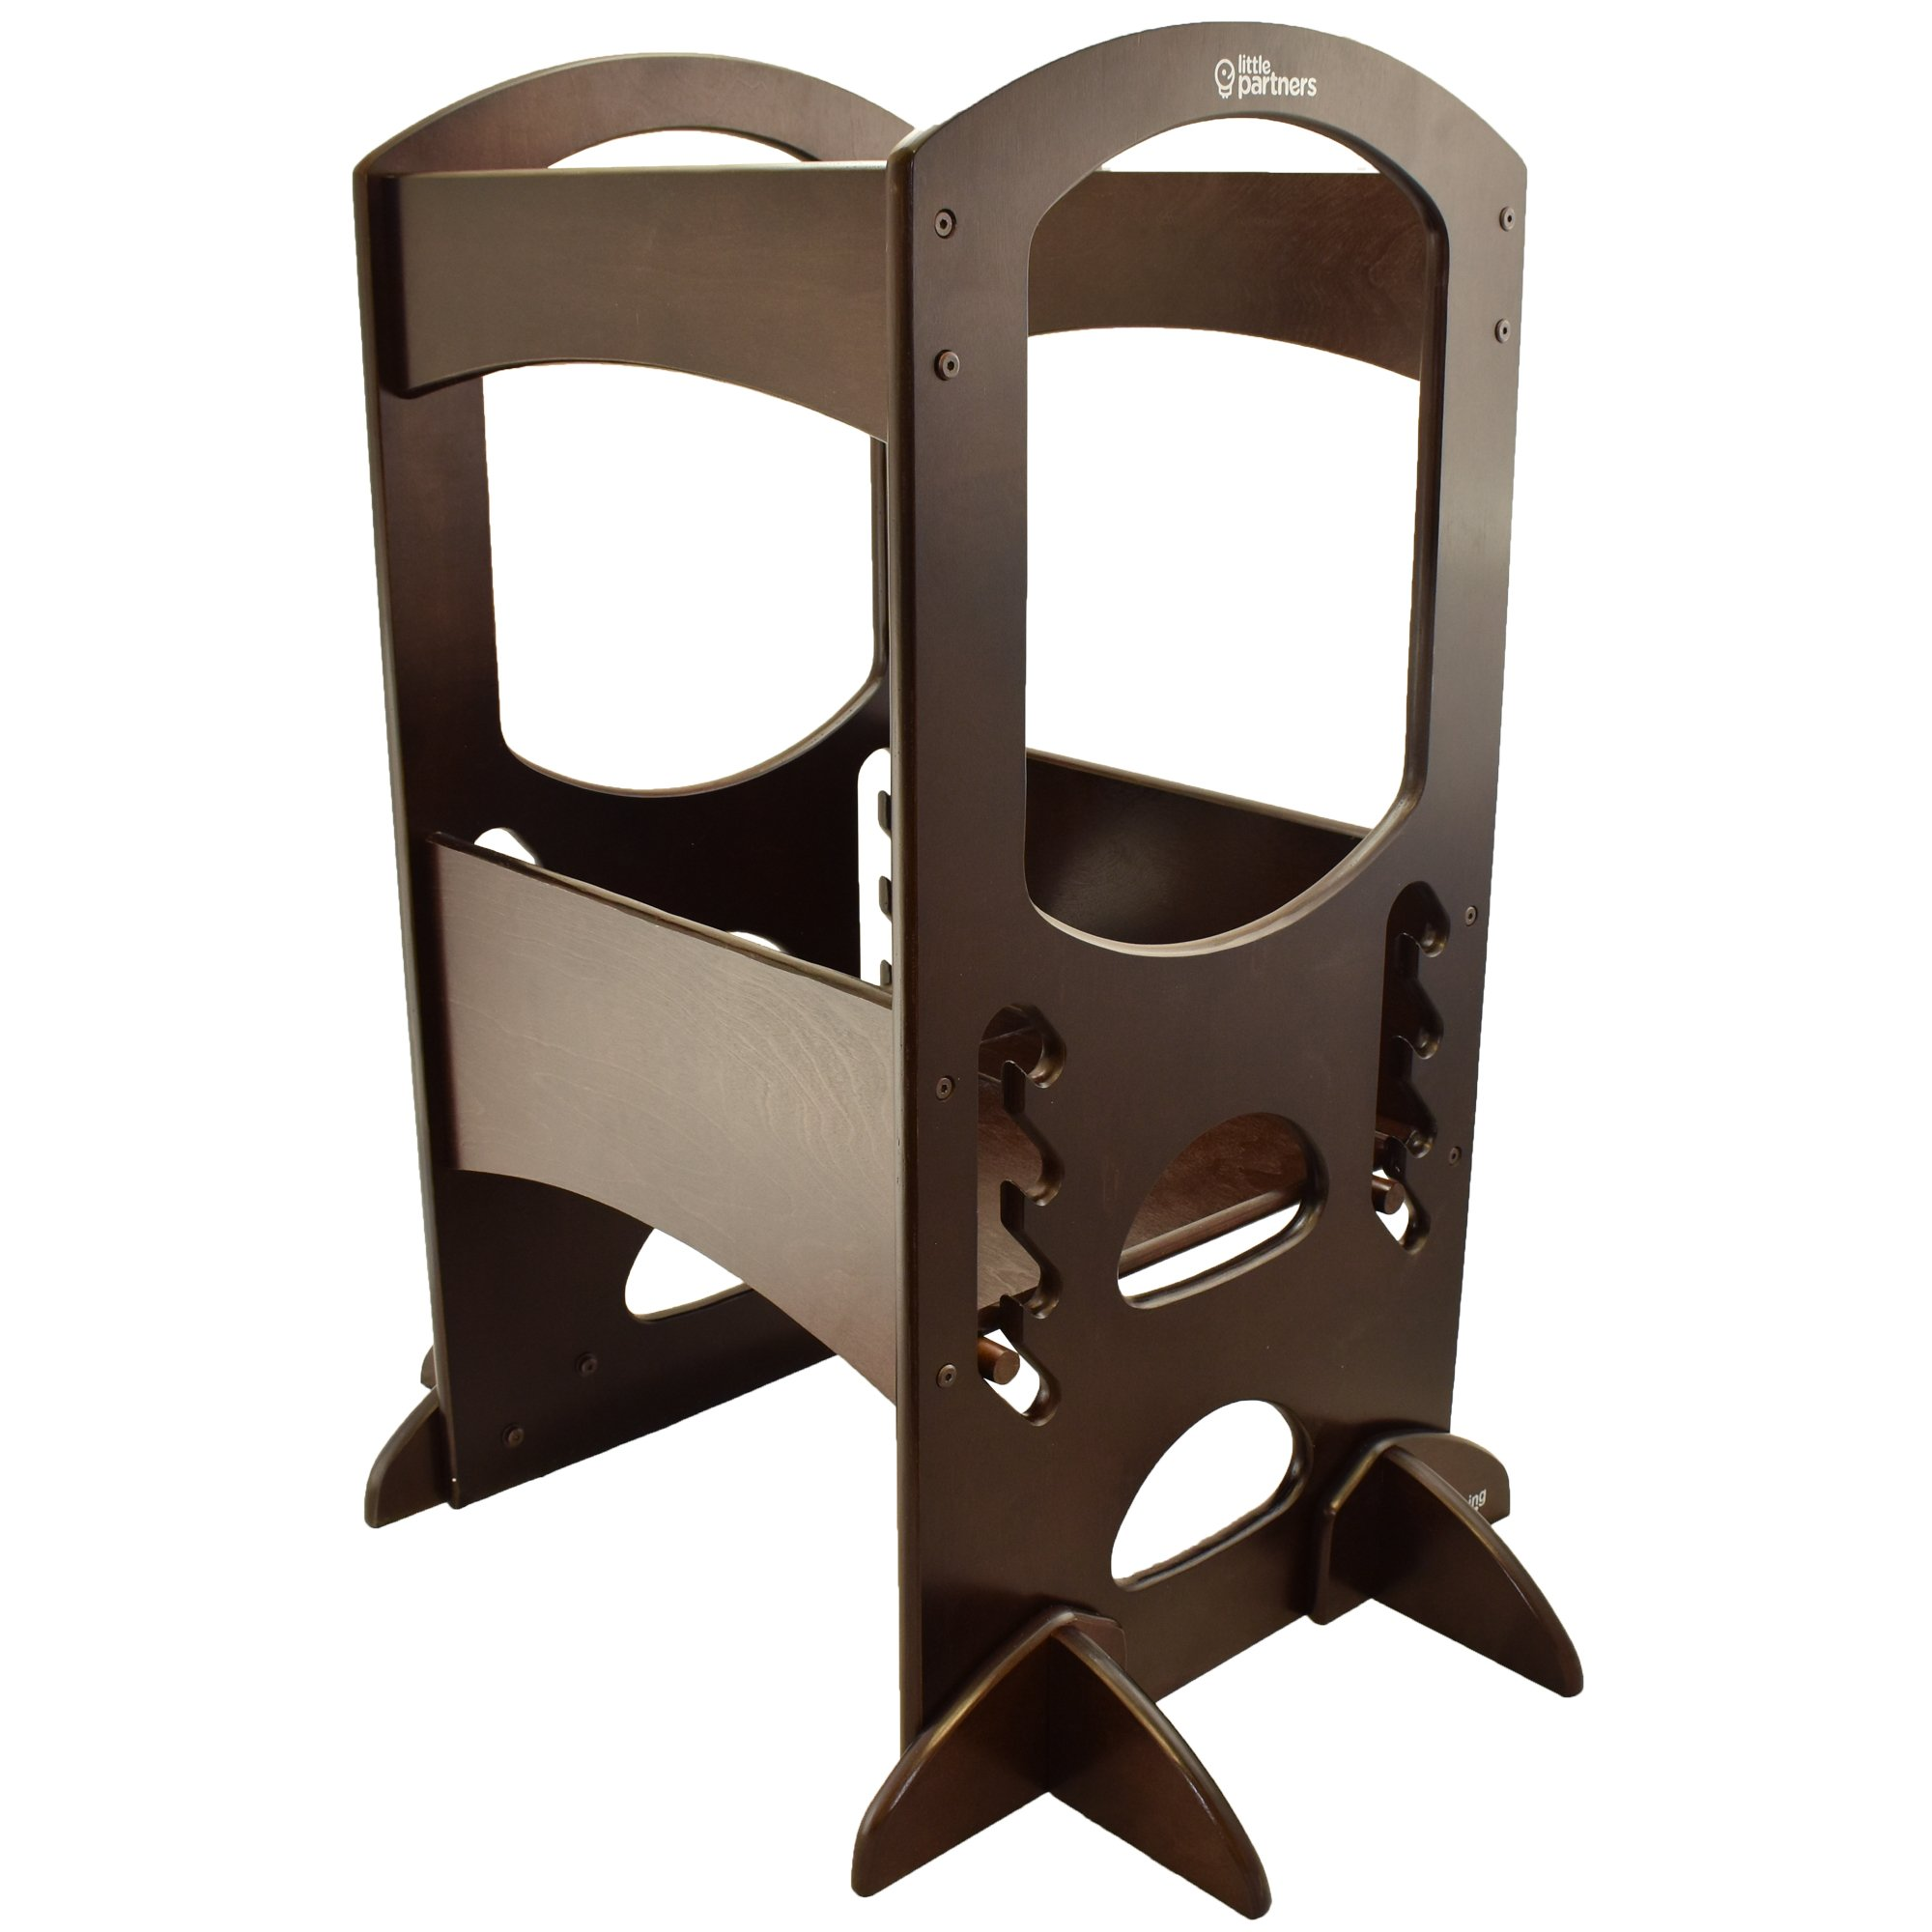 Little Partners Learning Tower Kids Adjustable Height Kitchen Step Stool for Toddlers or Any Little Helper - Espresso